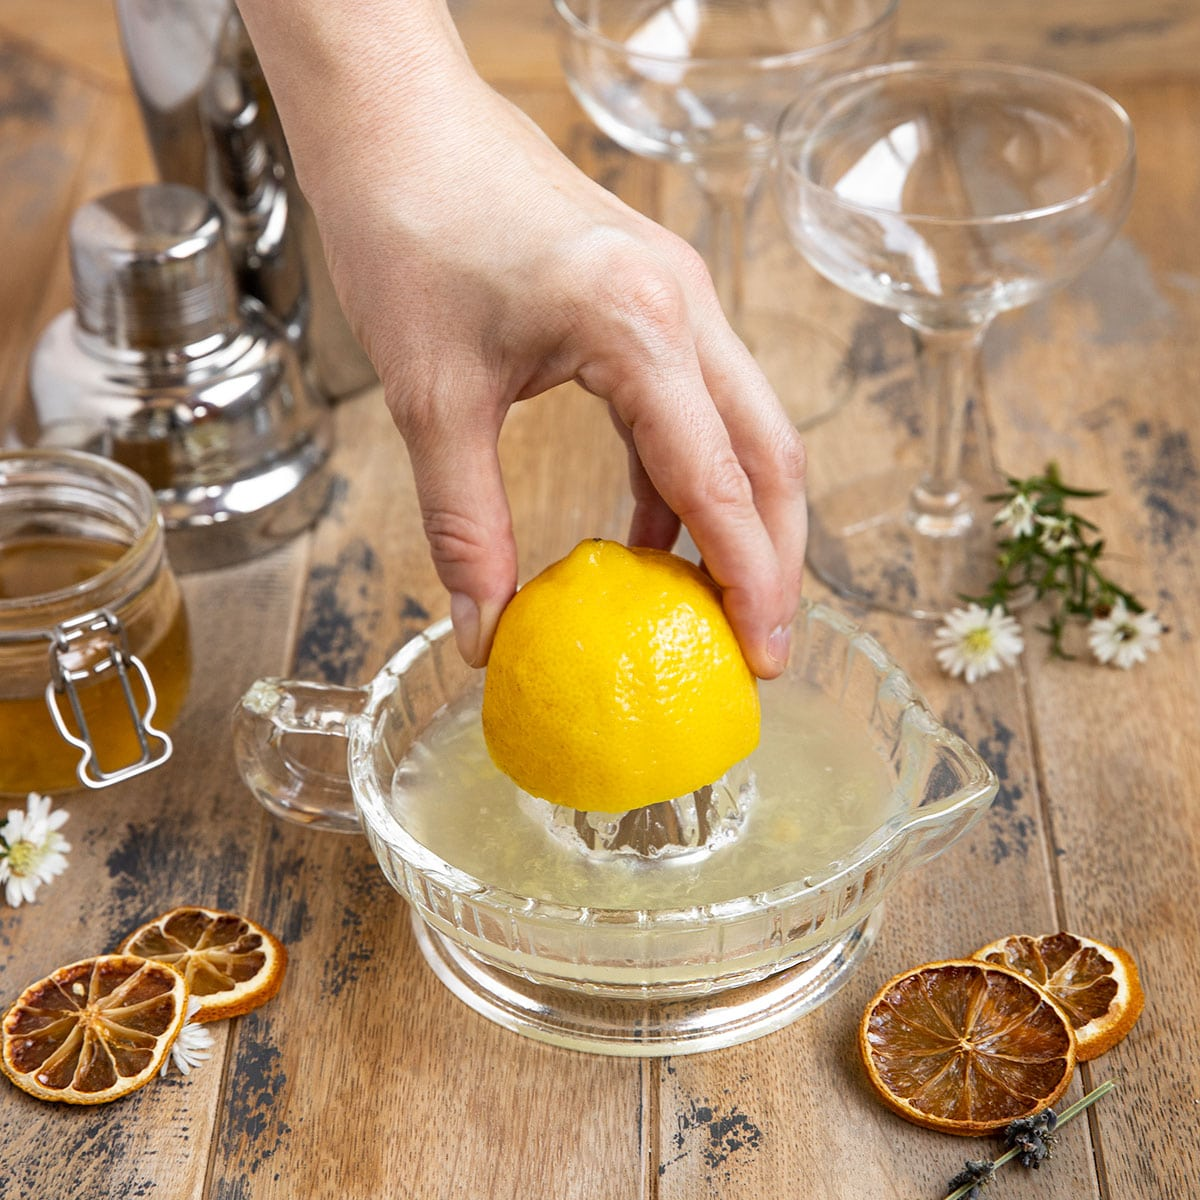 juicing a lemon in a glass citrus reamer